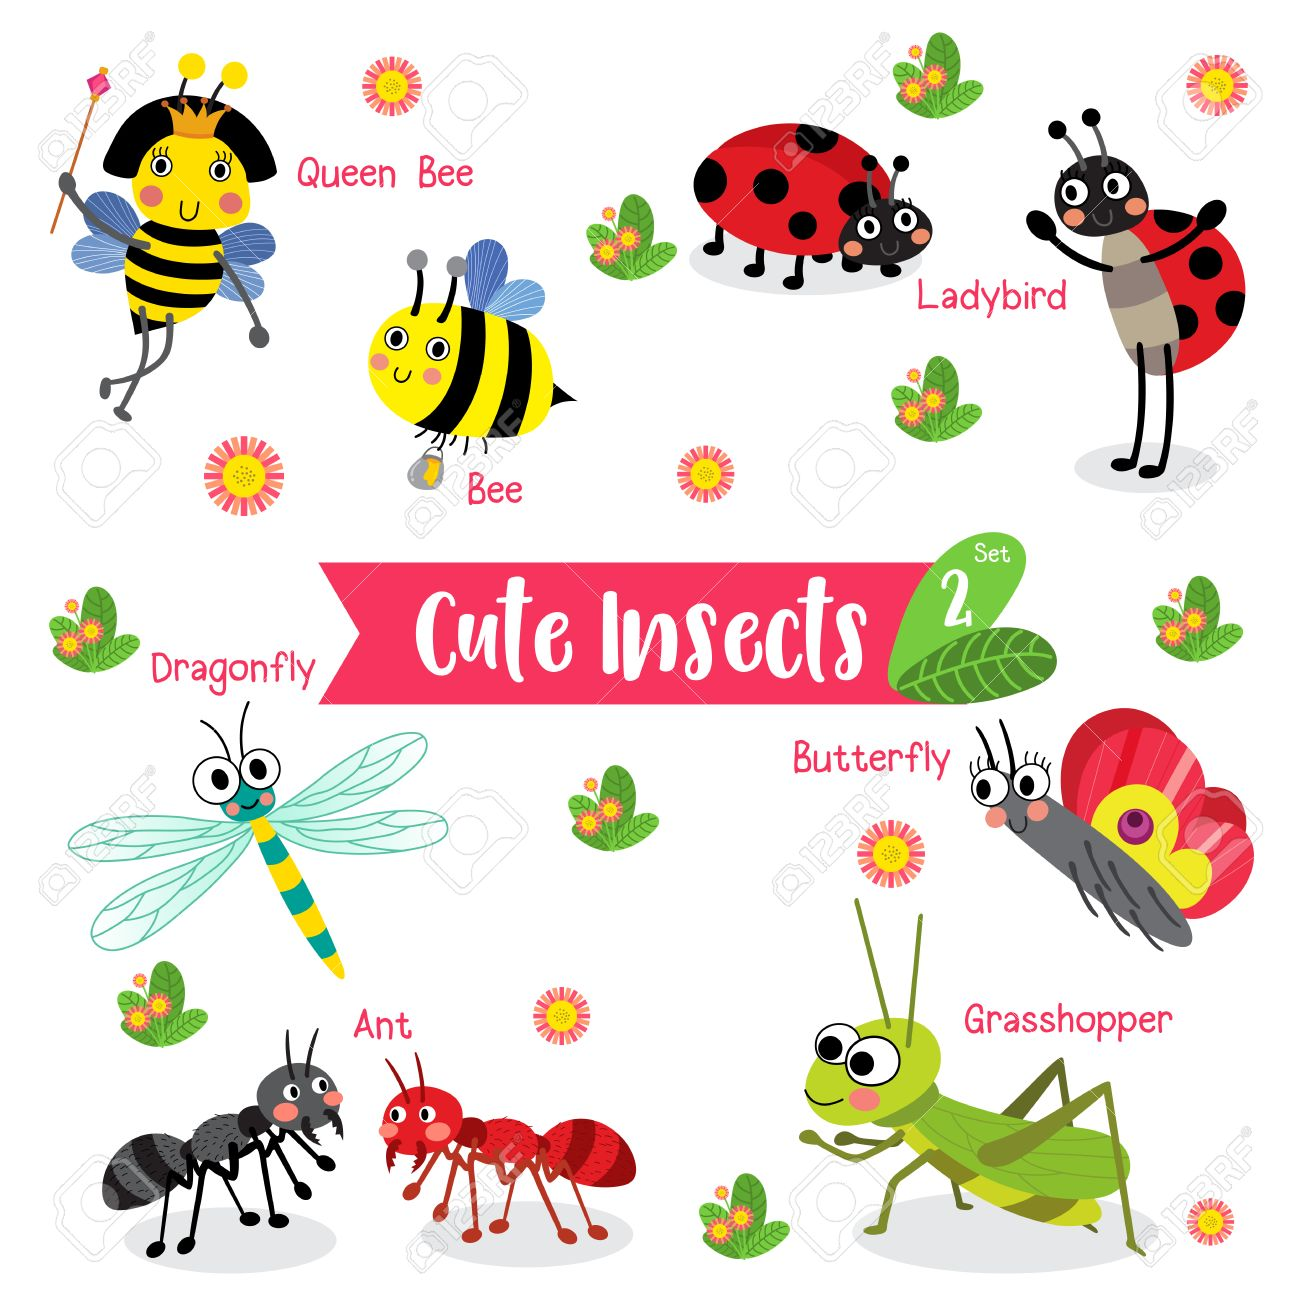 Cute Insects Animal cartoon on white background with animal name.